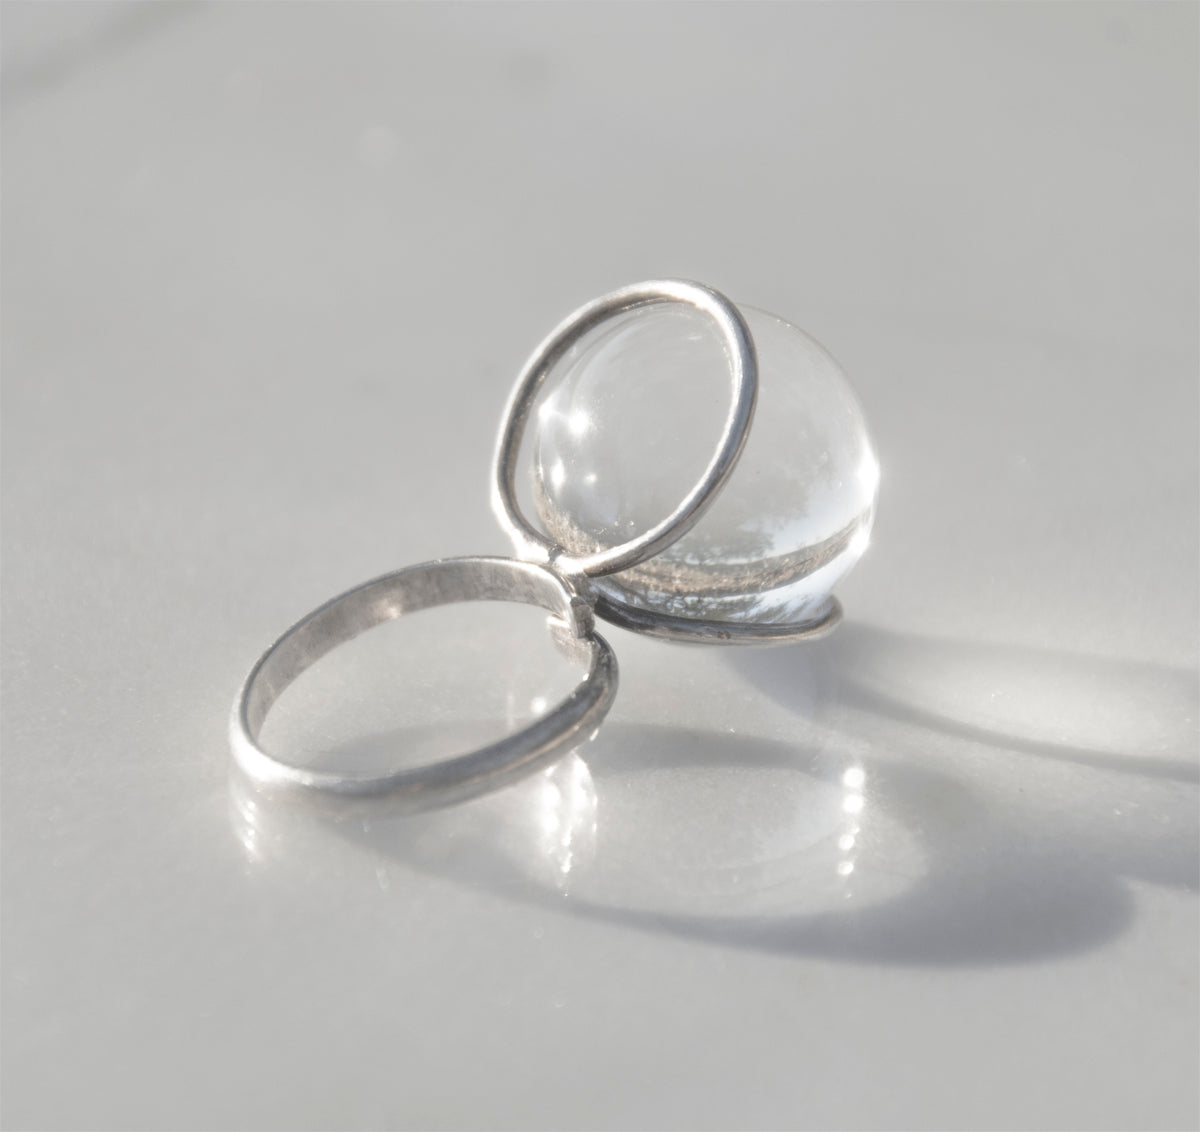 1970s Modernist Pools of Light Ring set in sterling silver with a large glass crystal ball at top. Sizing adjustable.